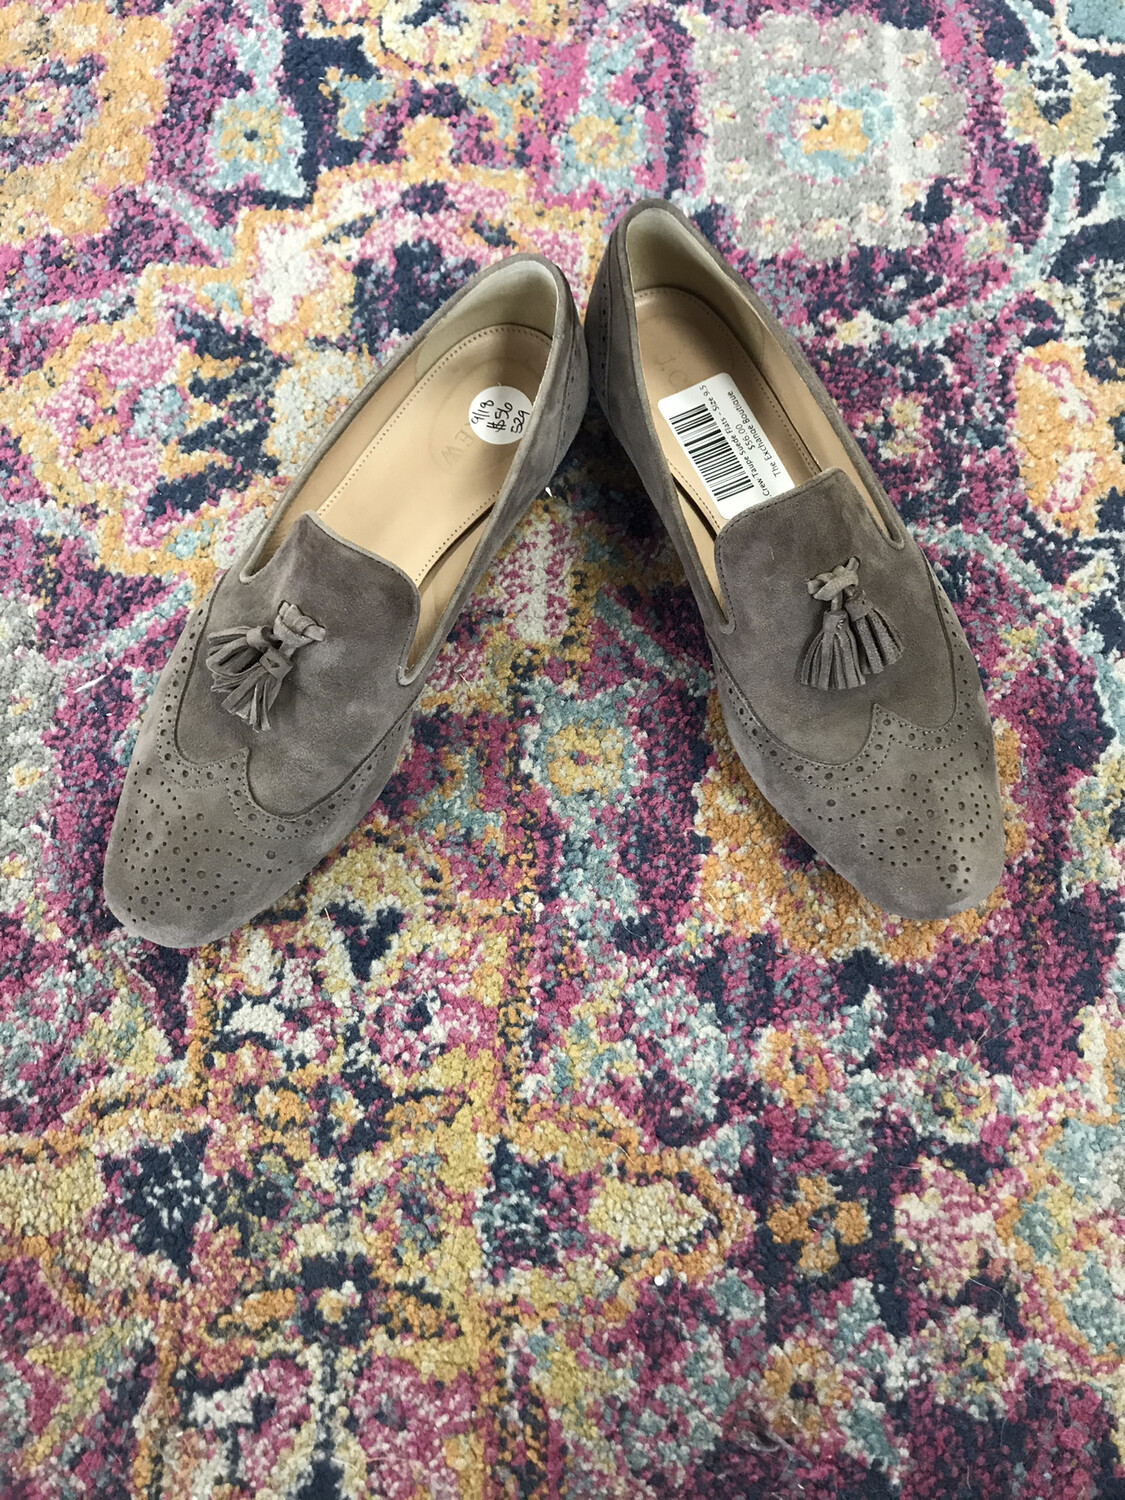 J.Crew Taupe Suede Flats - Size 9.5